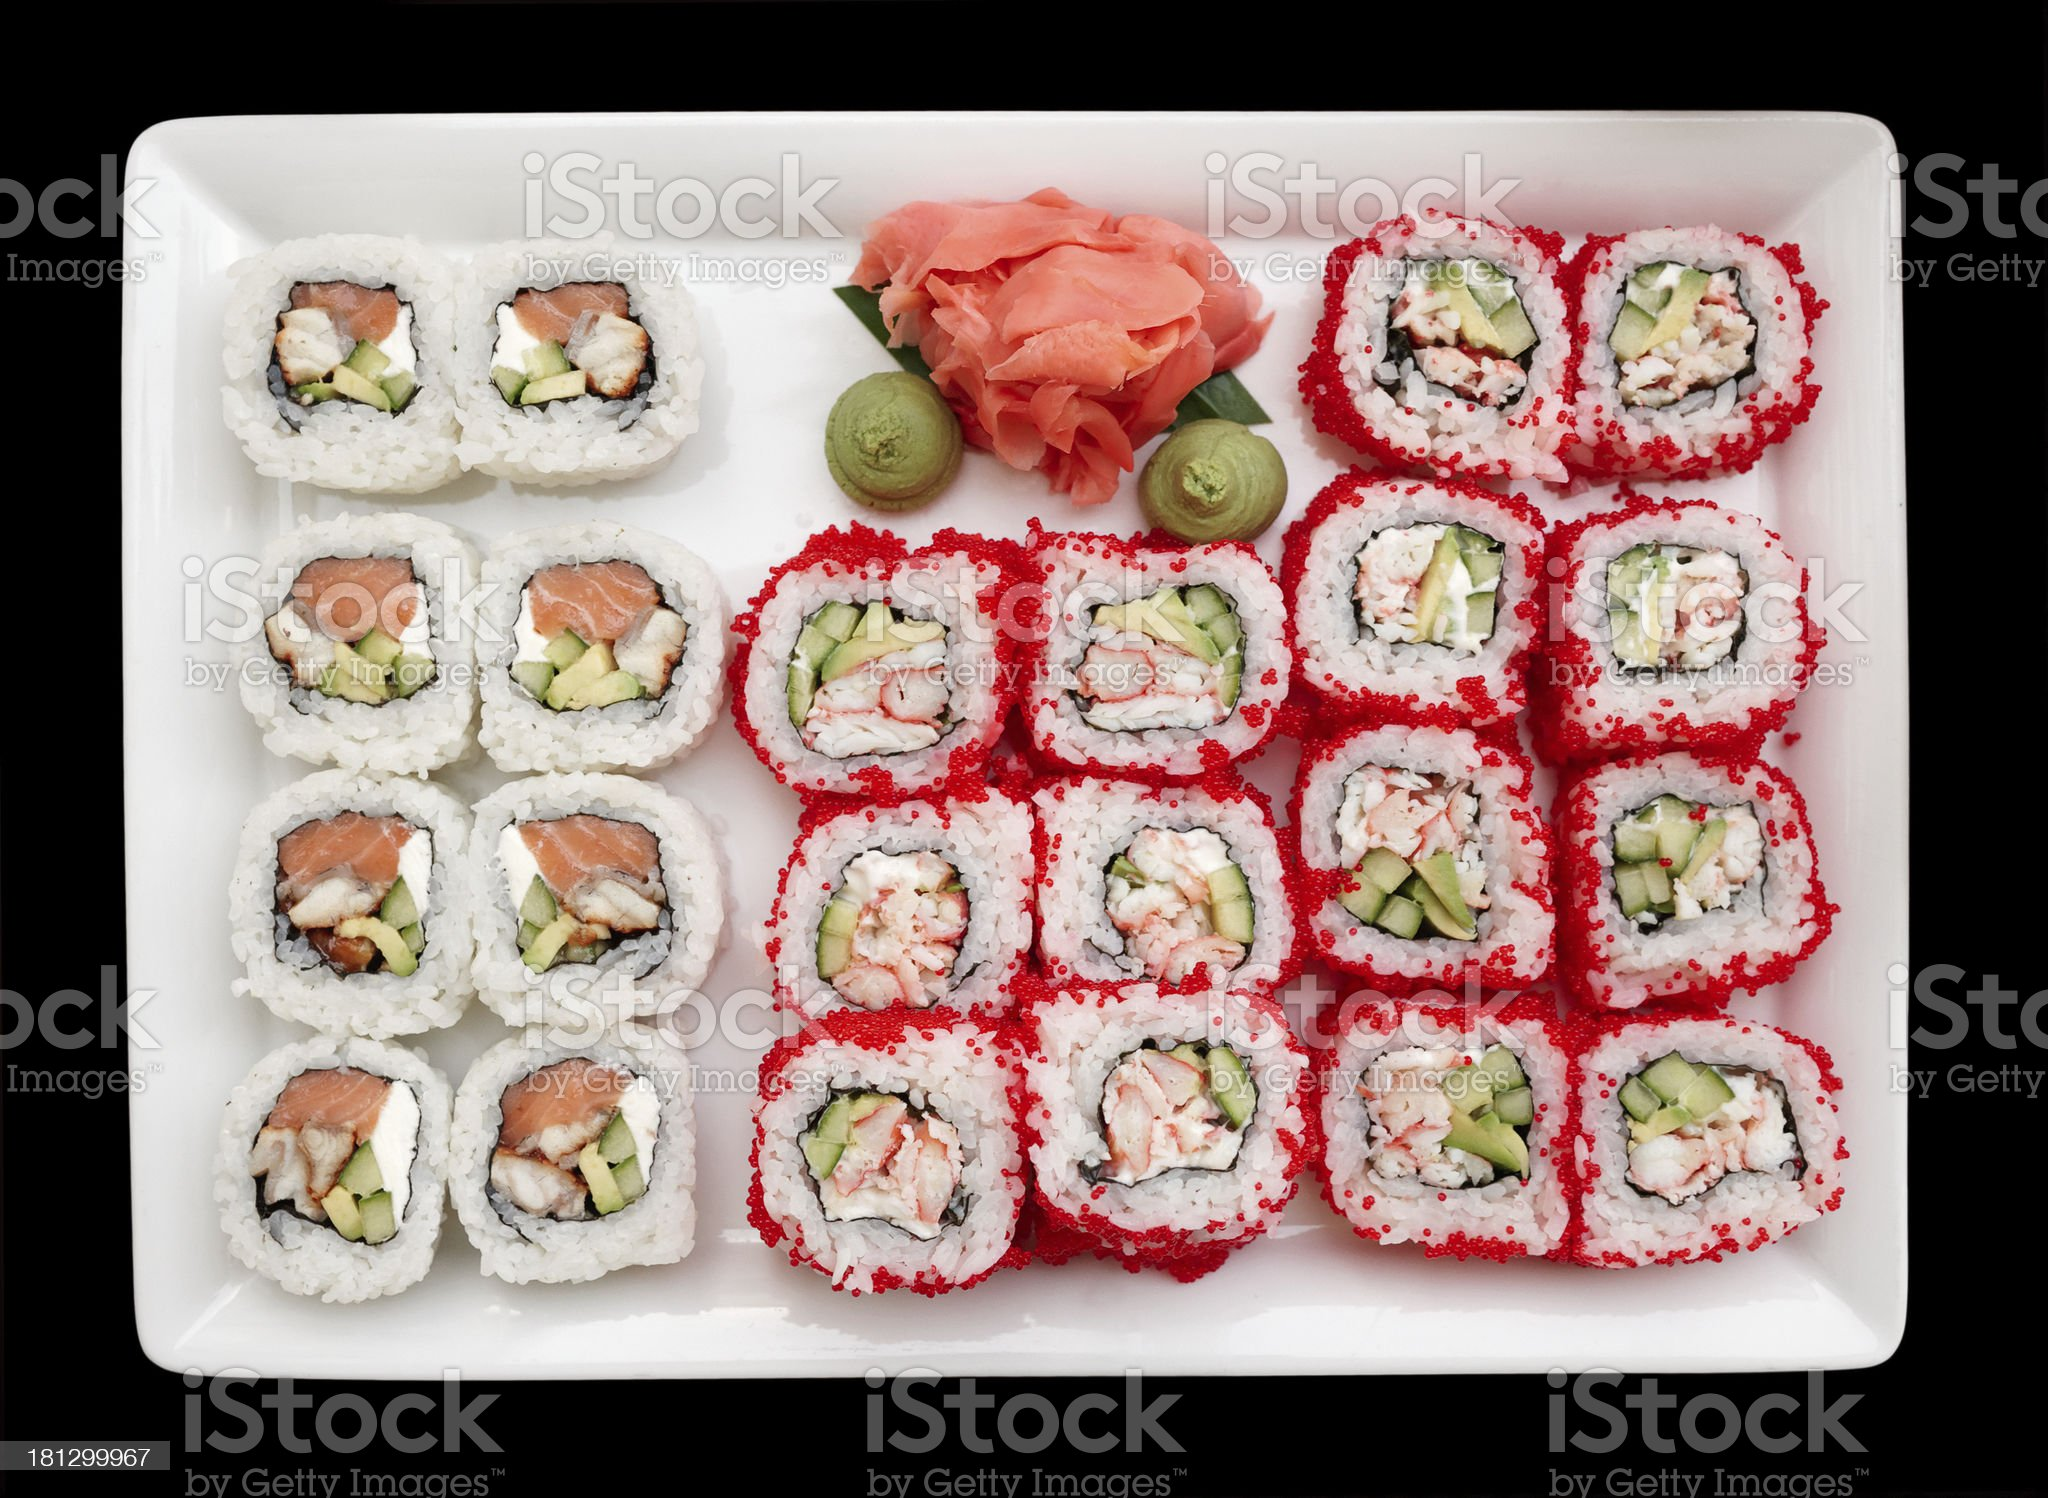 Maki sushi in plate, isolated on black royalty-free stock photo